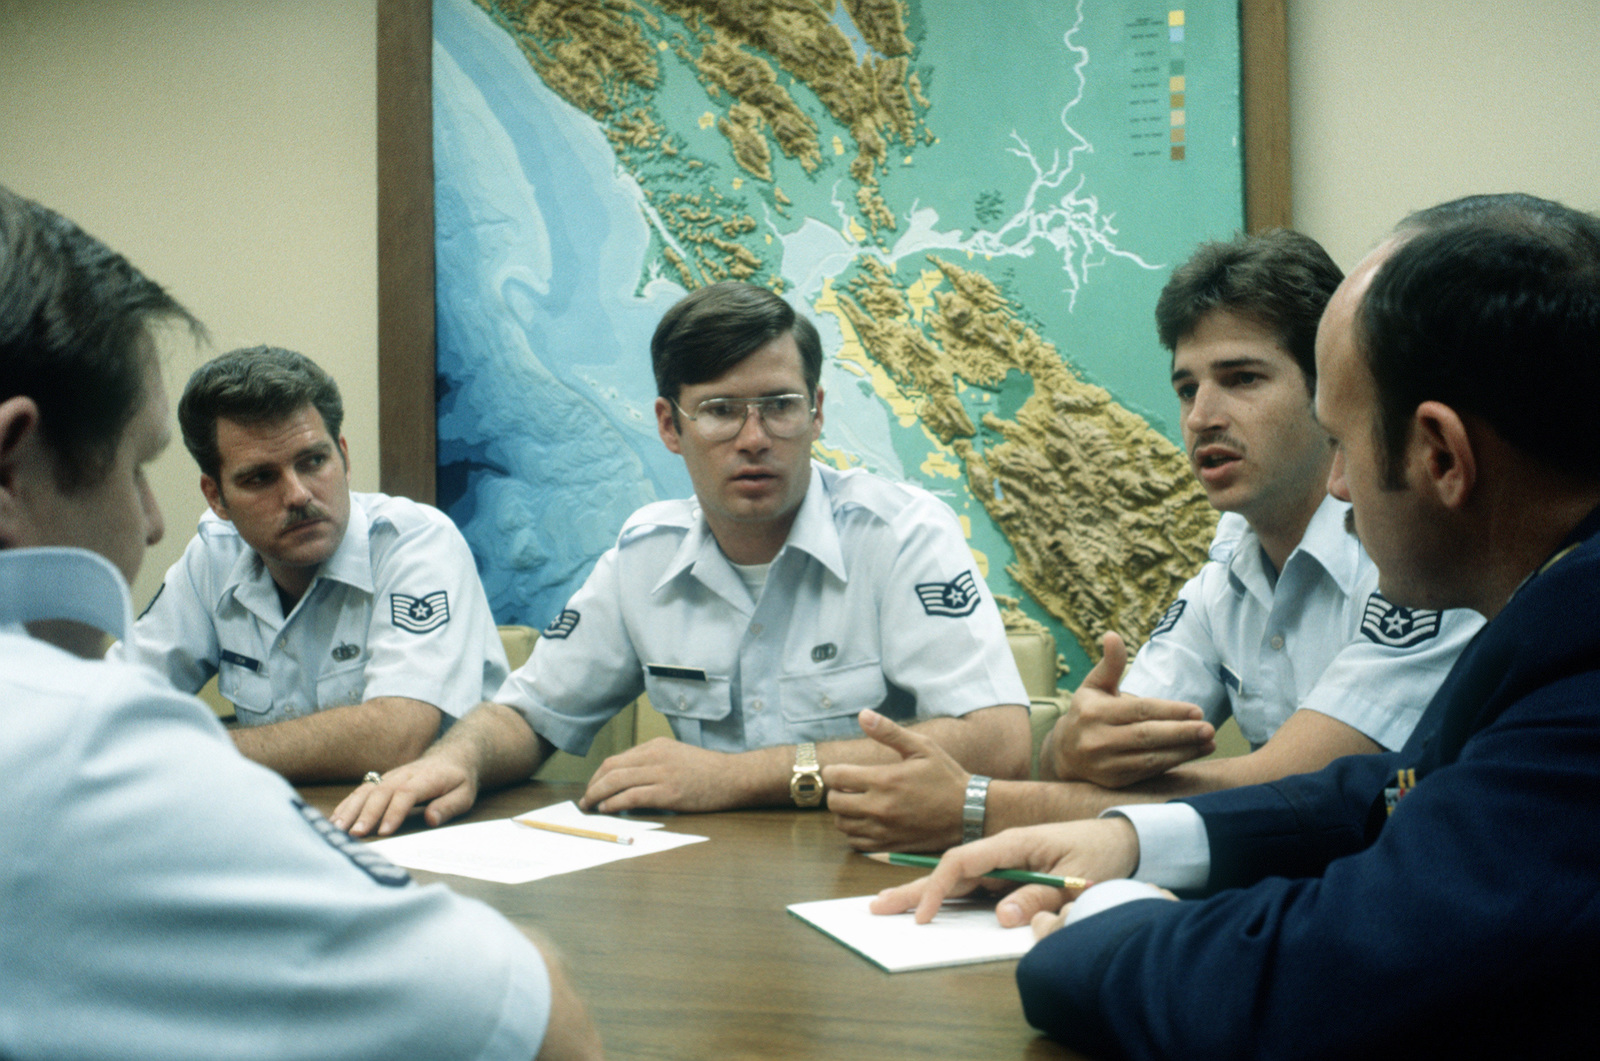 From right to left, MSGT Varner, TSGT Fred Crum, SSGT Michael Pate, SSGT Lichty and LT. Dan D'Innocenti discuss air traffic control operations at the Oakland Airport